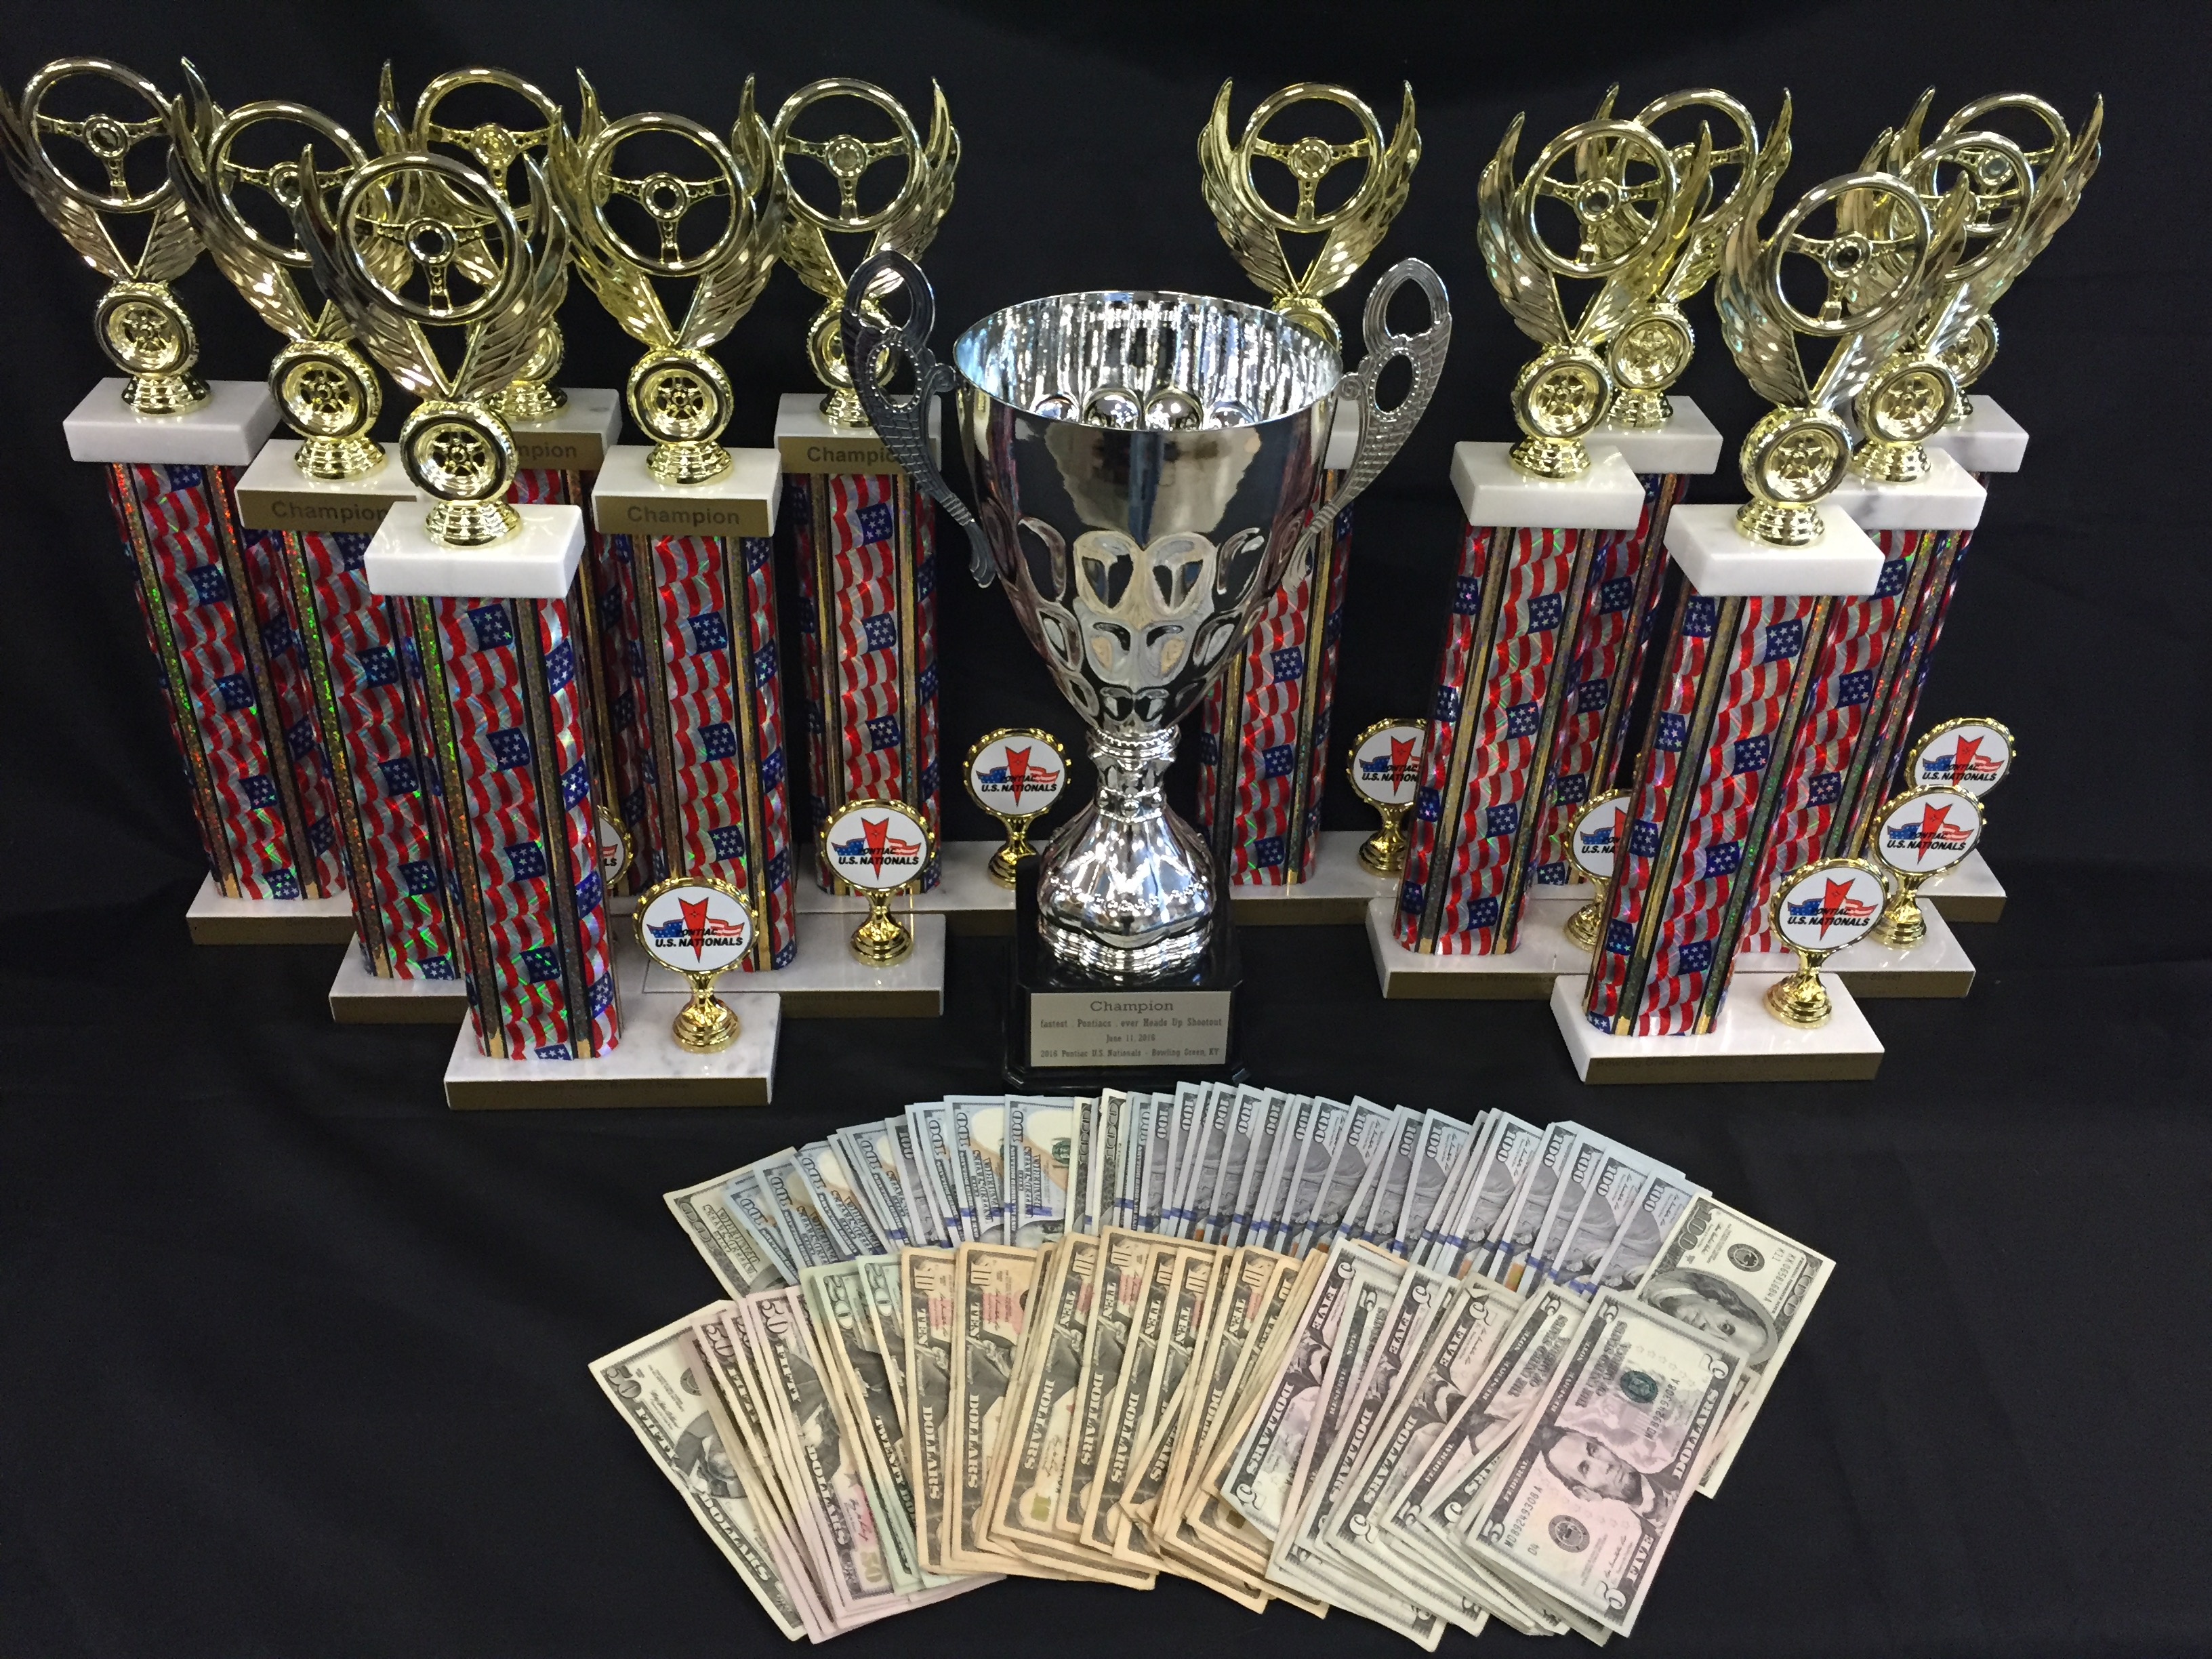 2016 Pontiac US Nationals Prizes 1